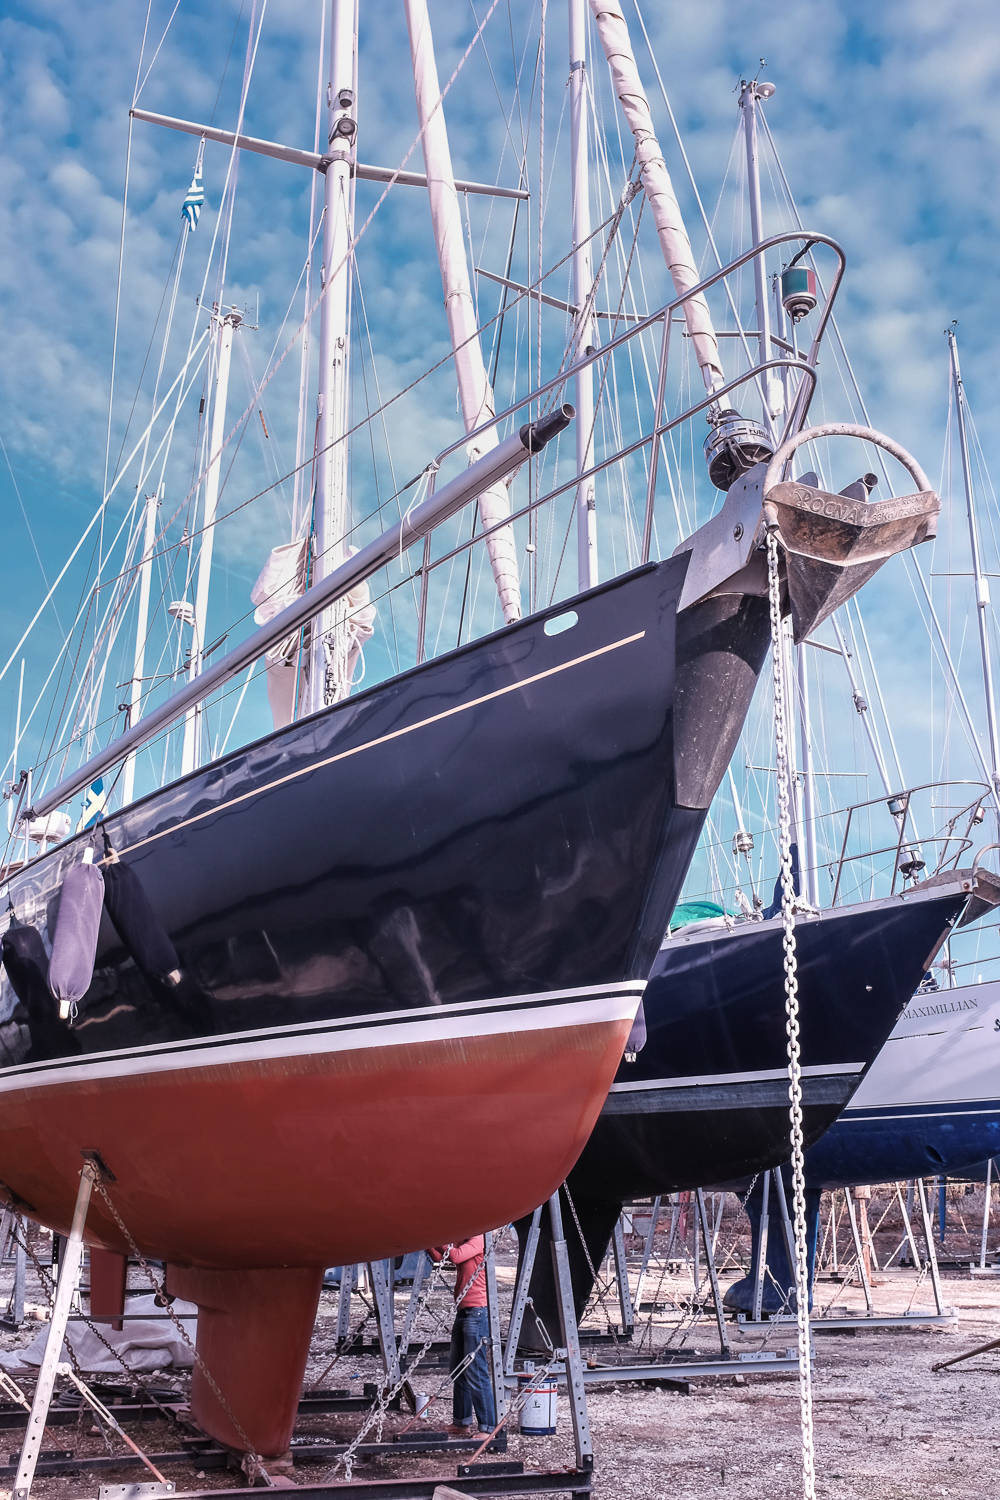 Sirius 42 -Steel Cutter 1991 Cruising Yacht For Sale in